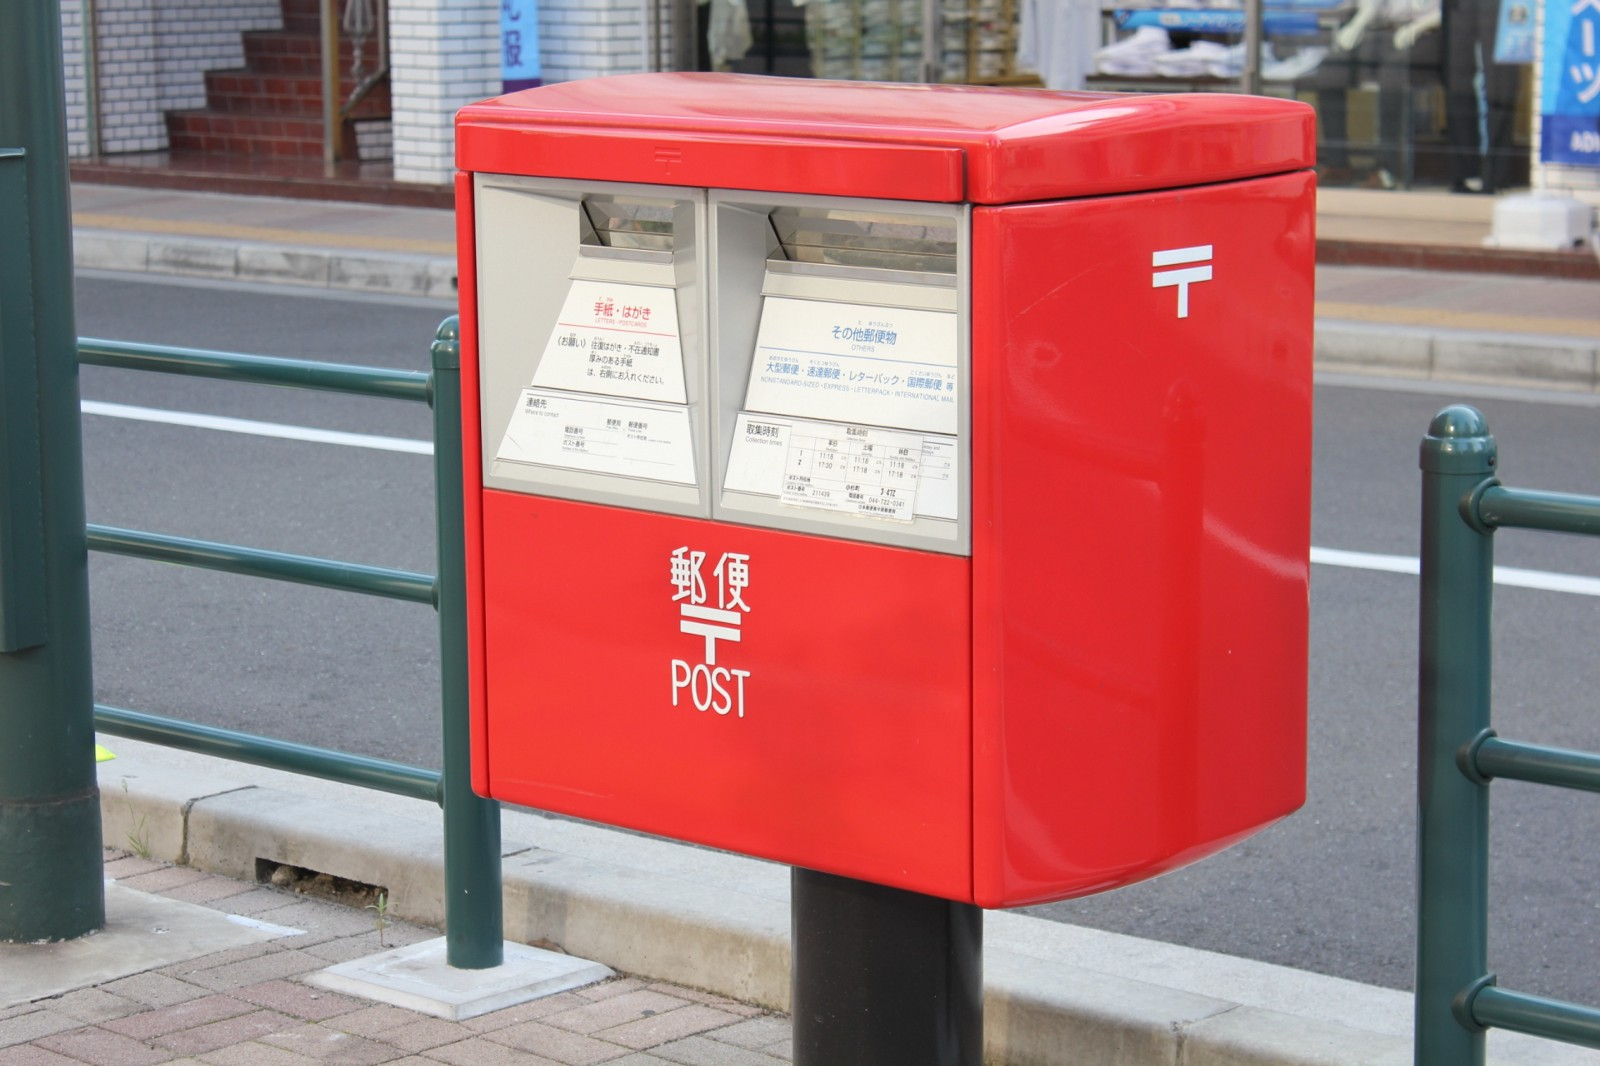 post boxes locations in airports to return your wifi [for japan